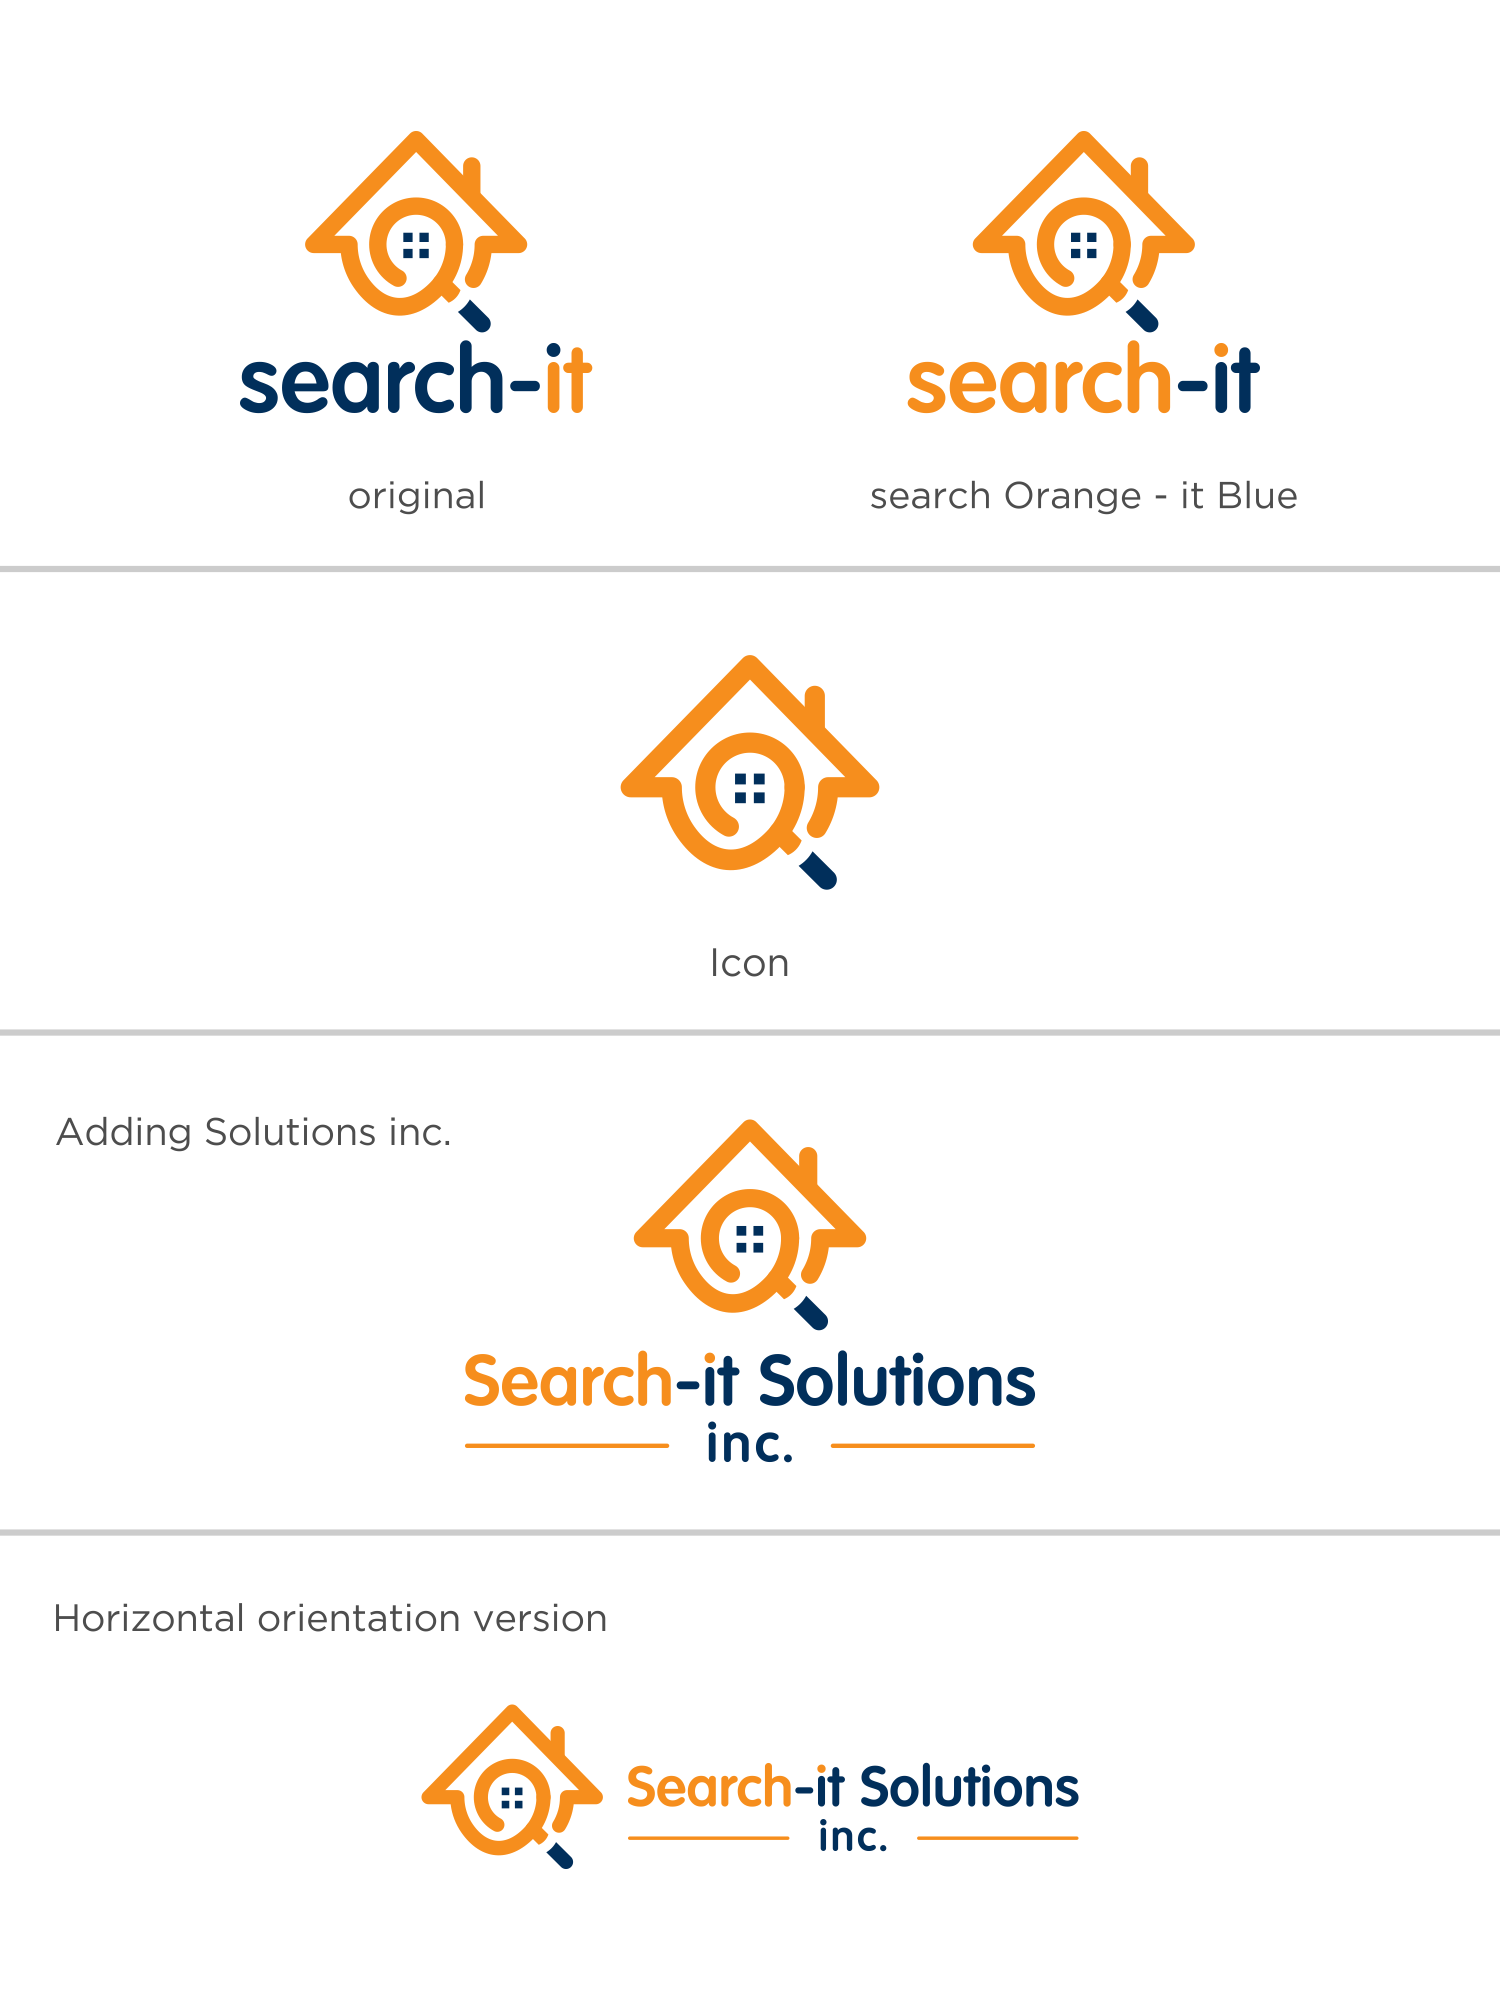 Search-it Solutions, Inc. Logo Contest